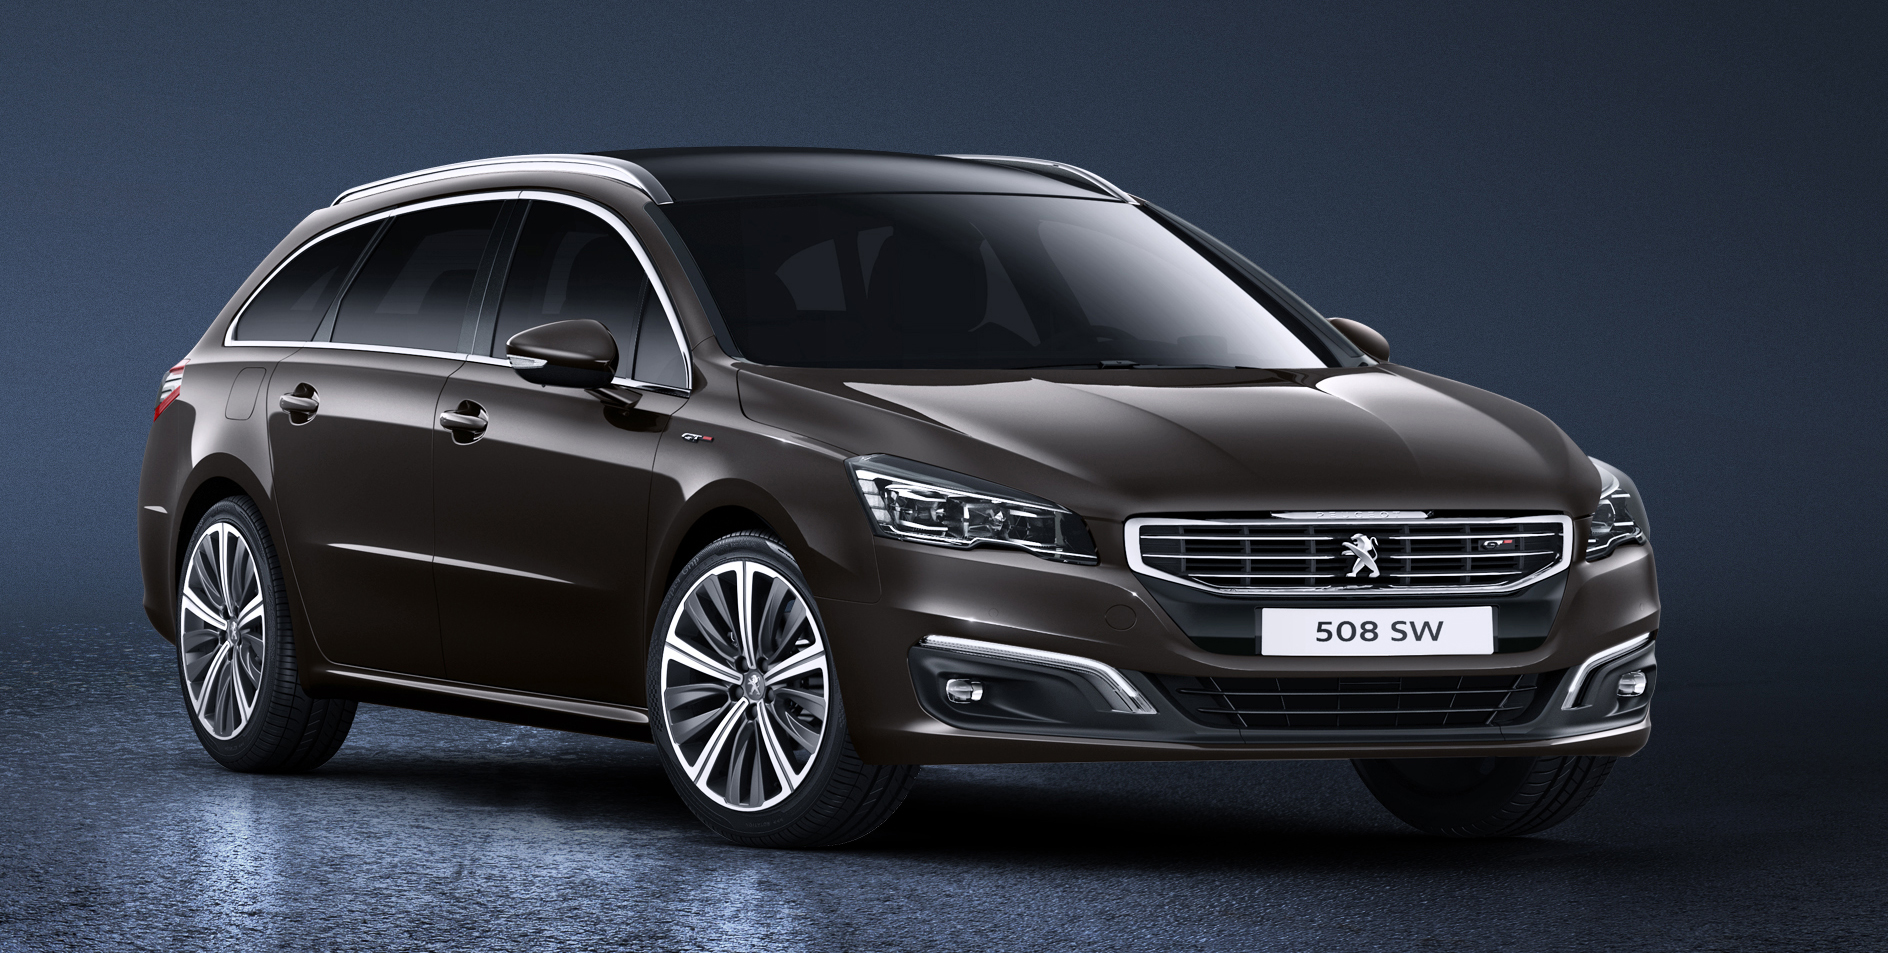 2016 peugeot 508 sw pictures information and specs auto. Black Bedroom Furniture Sets. Home Design Ideas